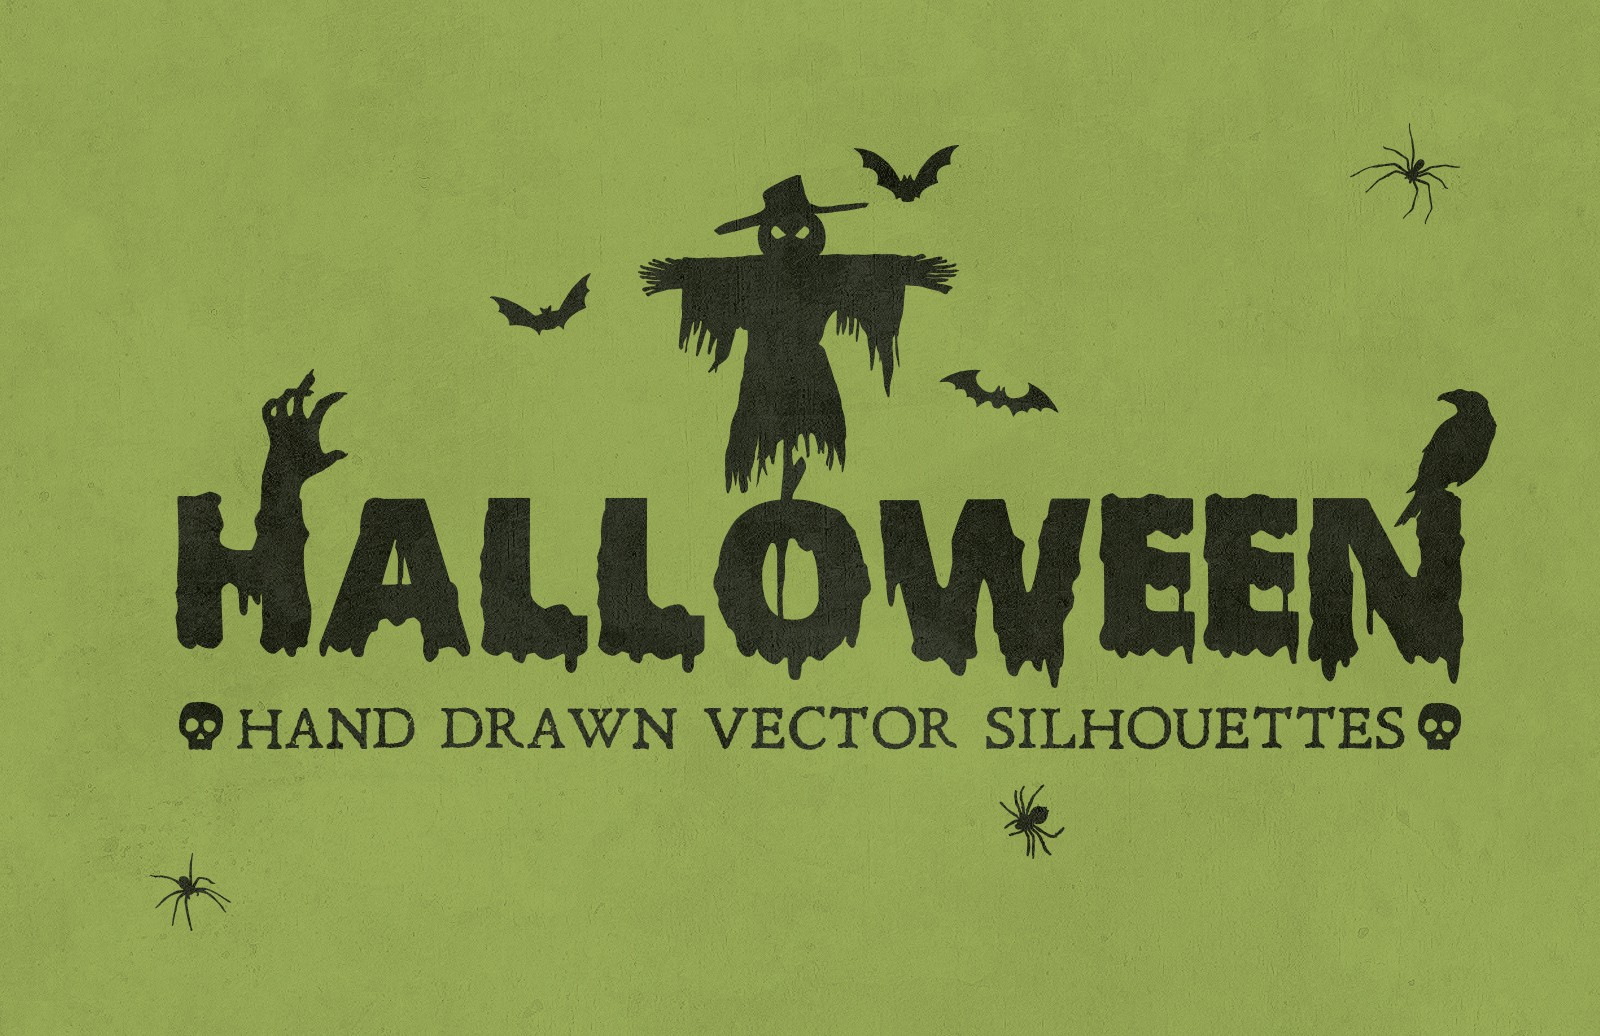 Halloween Vector Silhouettes 1